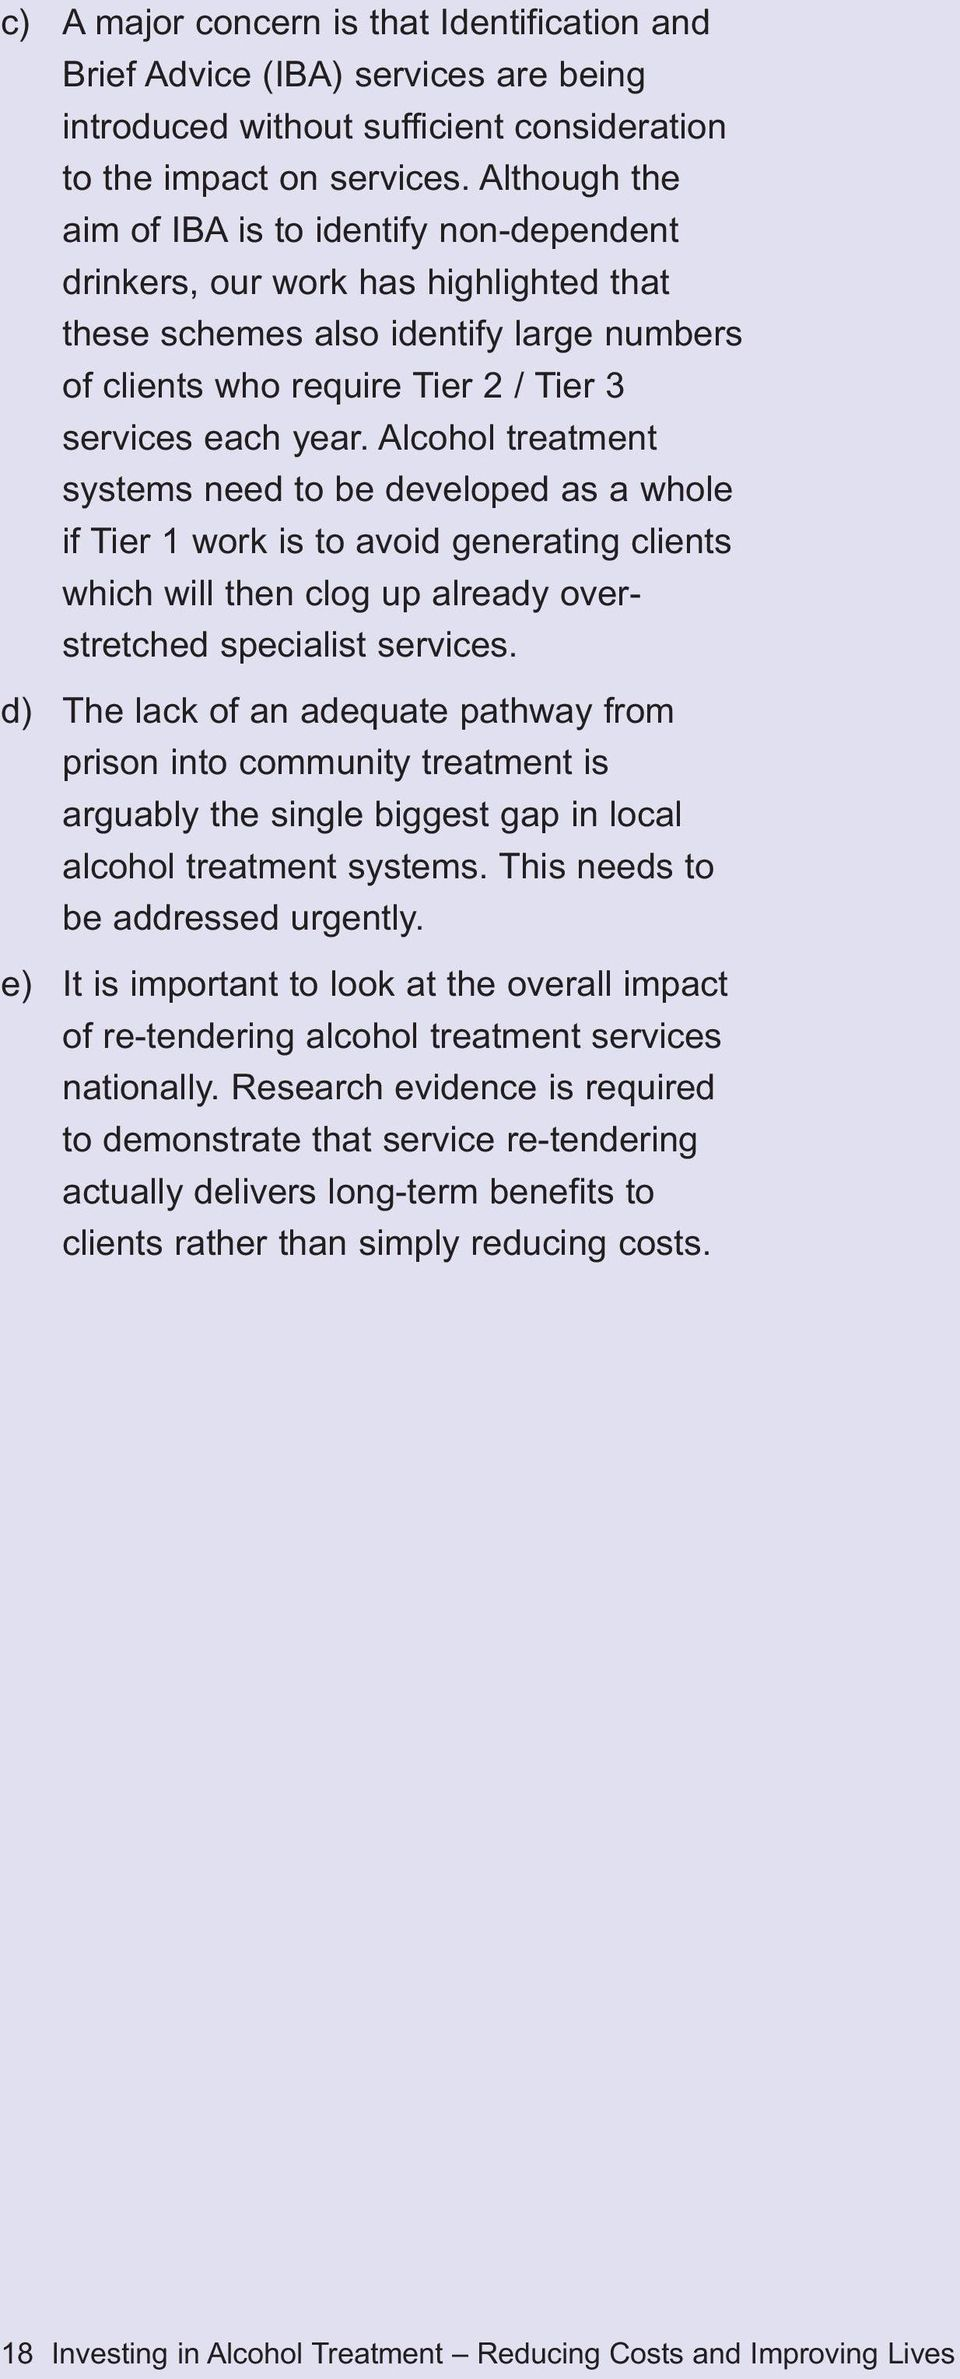 Alcohol treatment systems need to be developed as a whole if Tier 1 work is to avoid generating clients which will then clog up already overstretched specialist services.